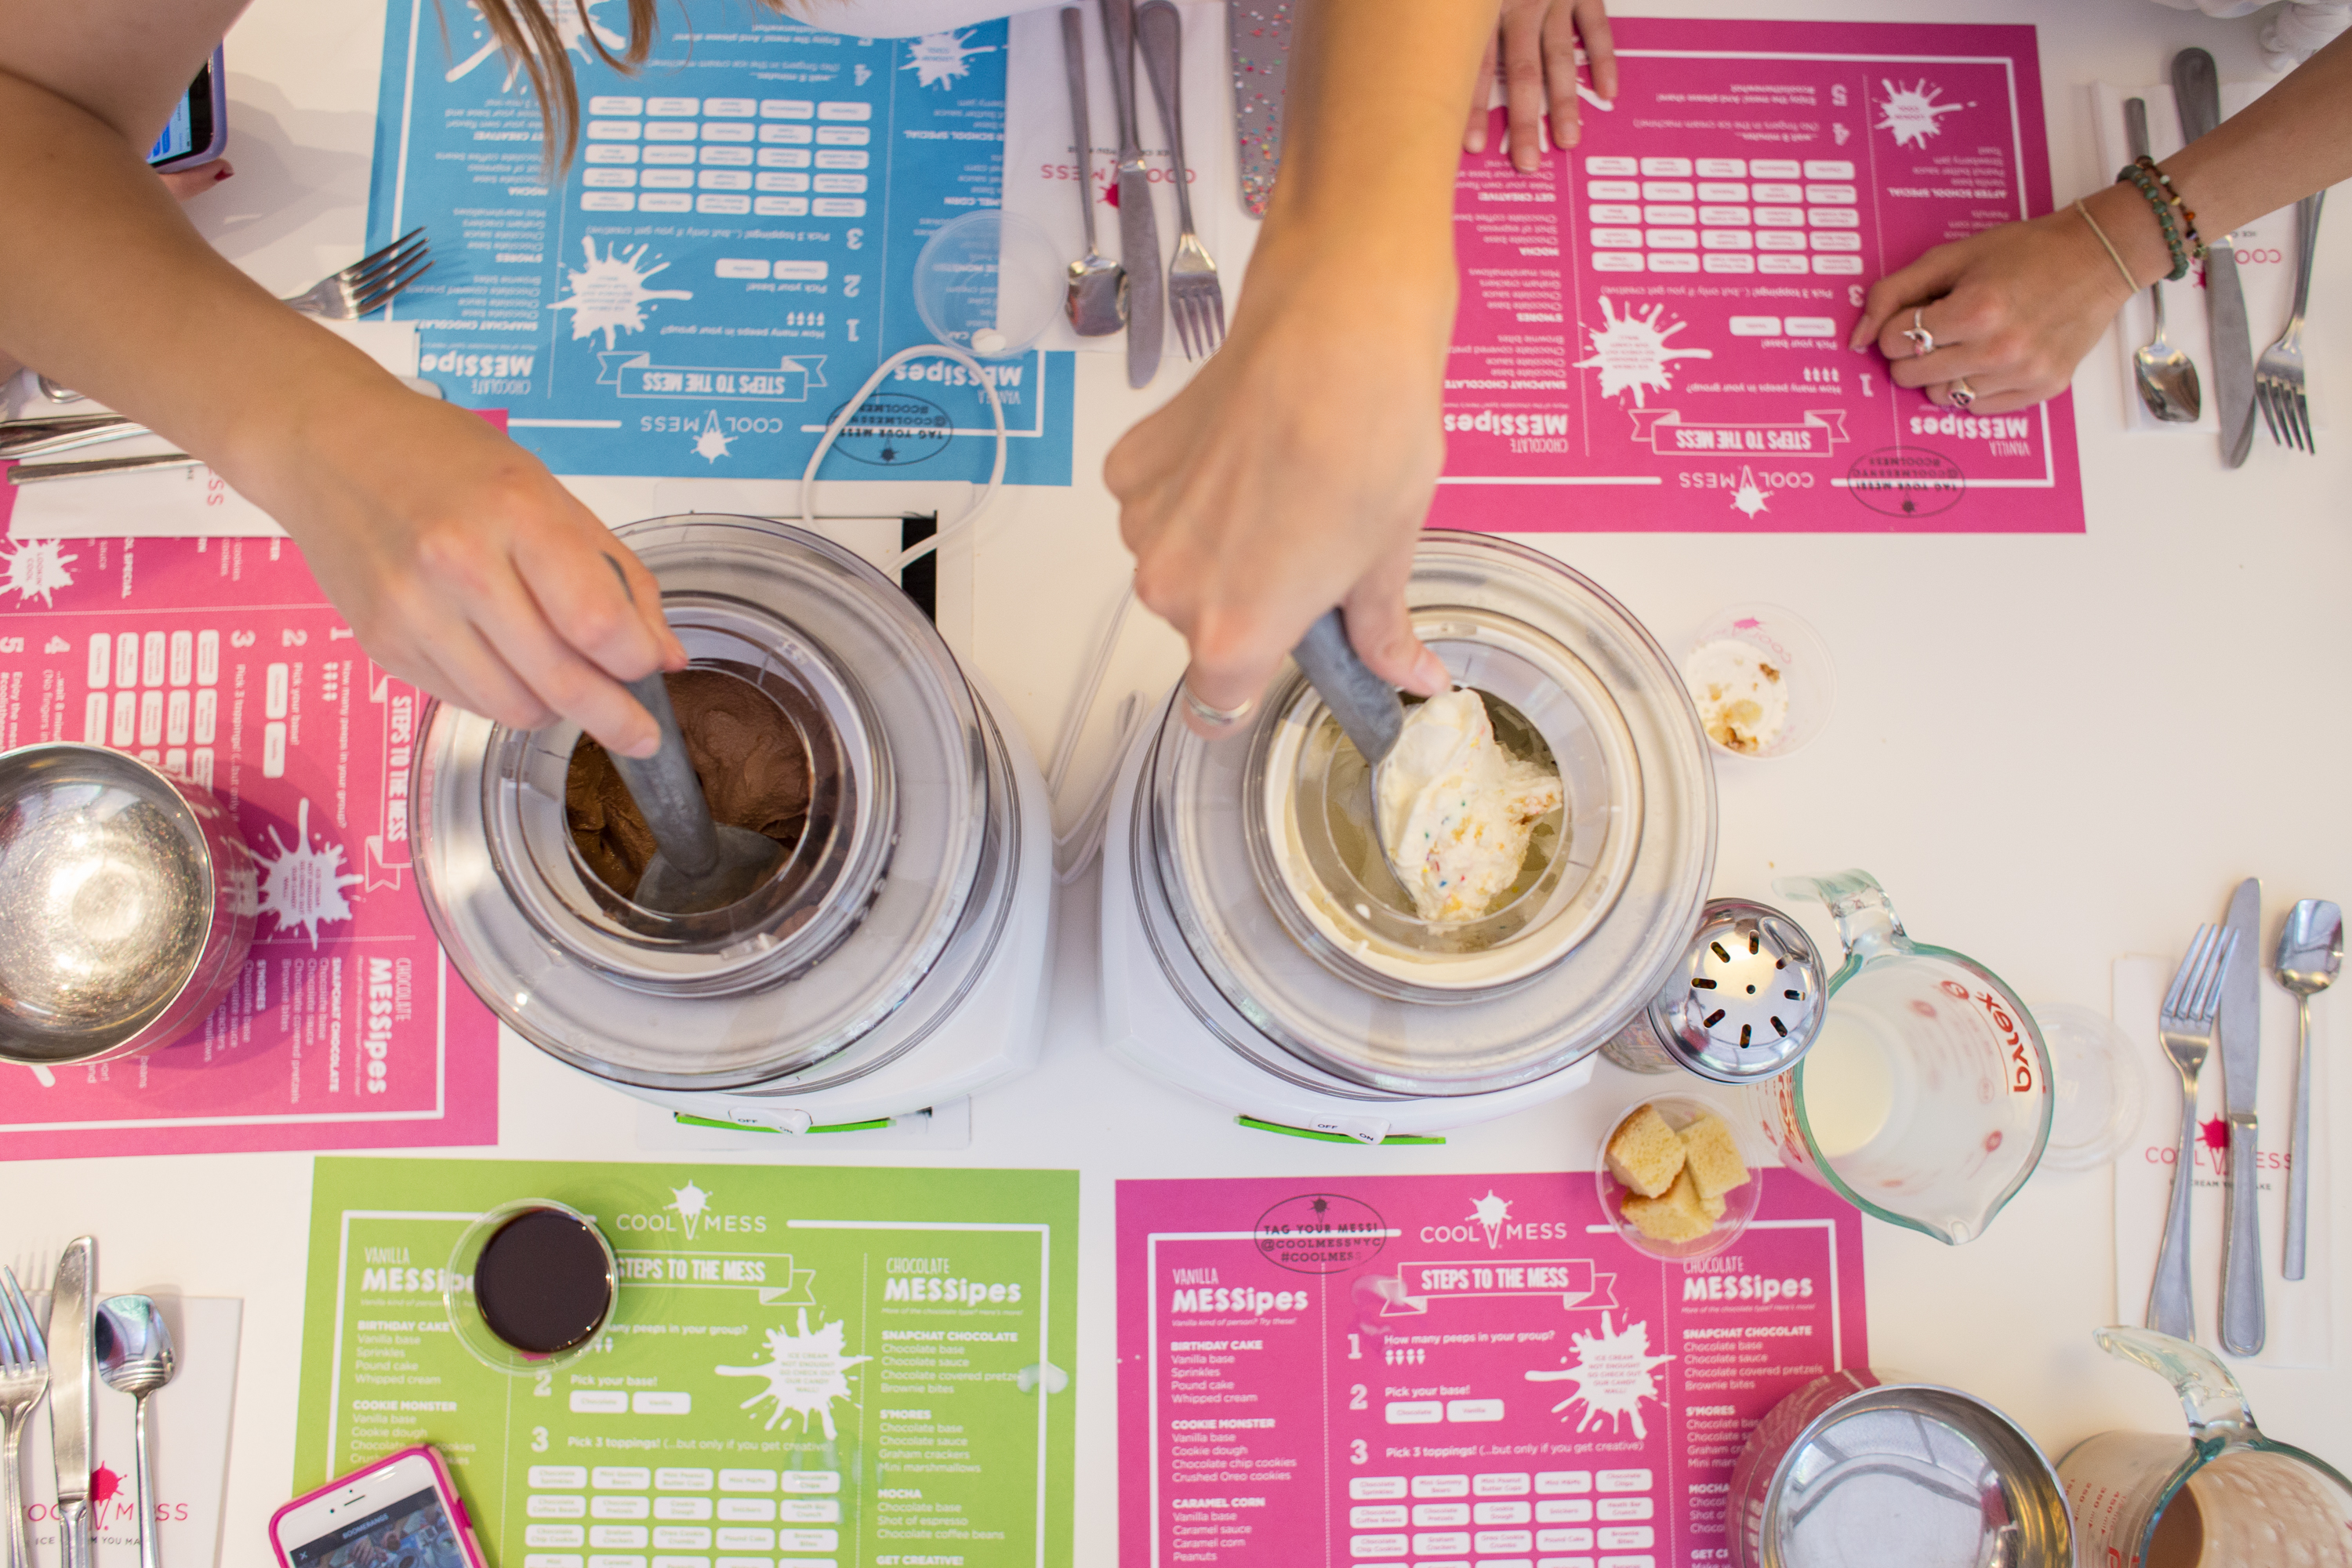 Make your own Ice Cream & Leave the Drips at CoolMess